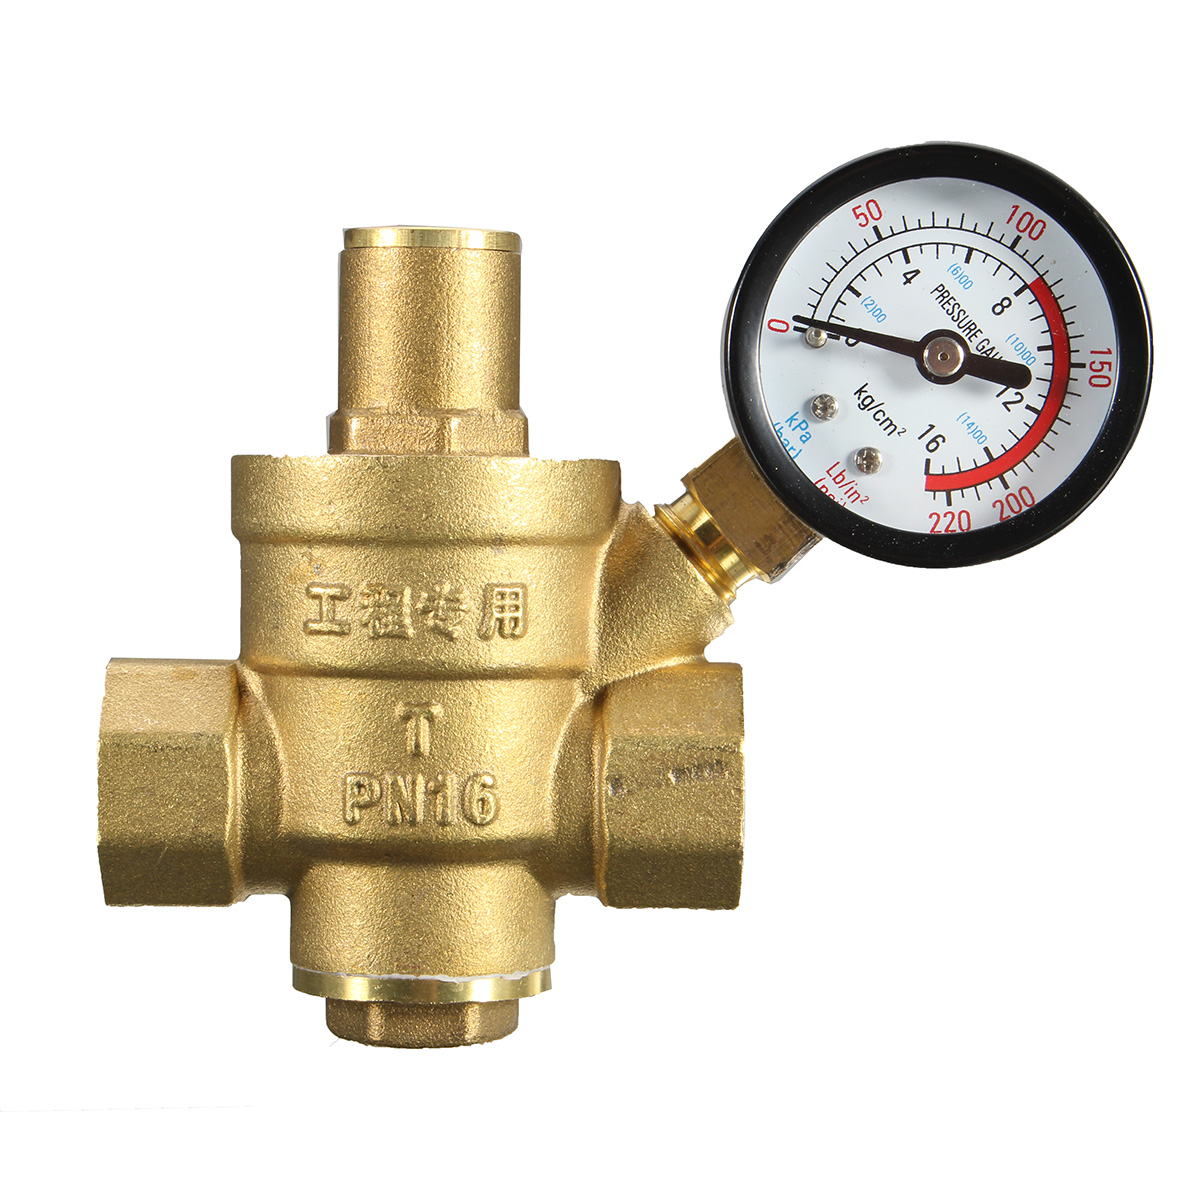 dn20 npt adjustable brass water pressure regulator reducer with gauge meter alex nld. Black Bedroom Furniture Sets. Home Design Ideas